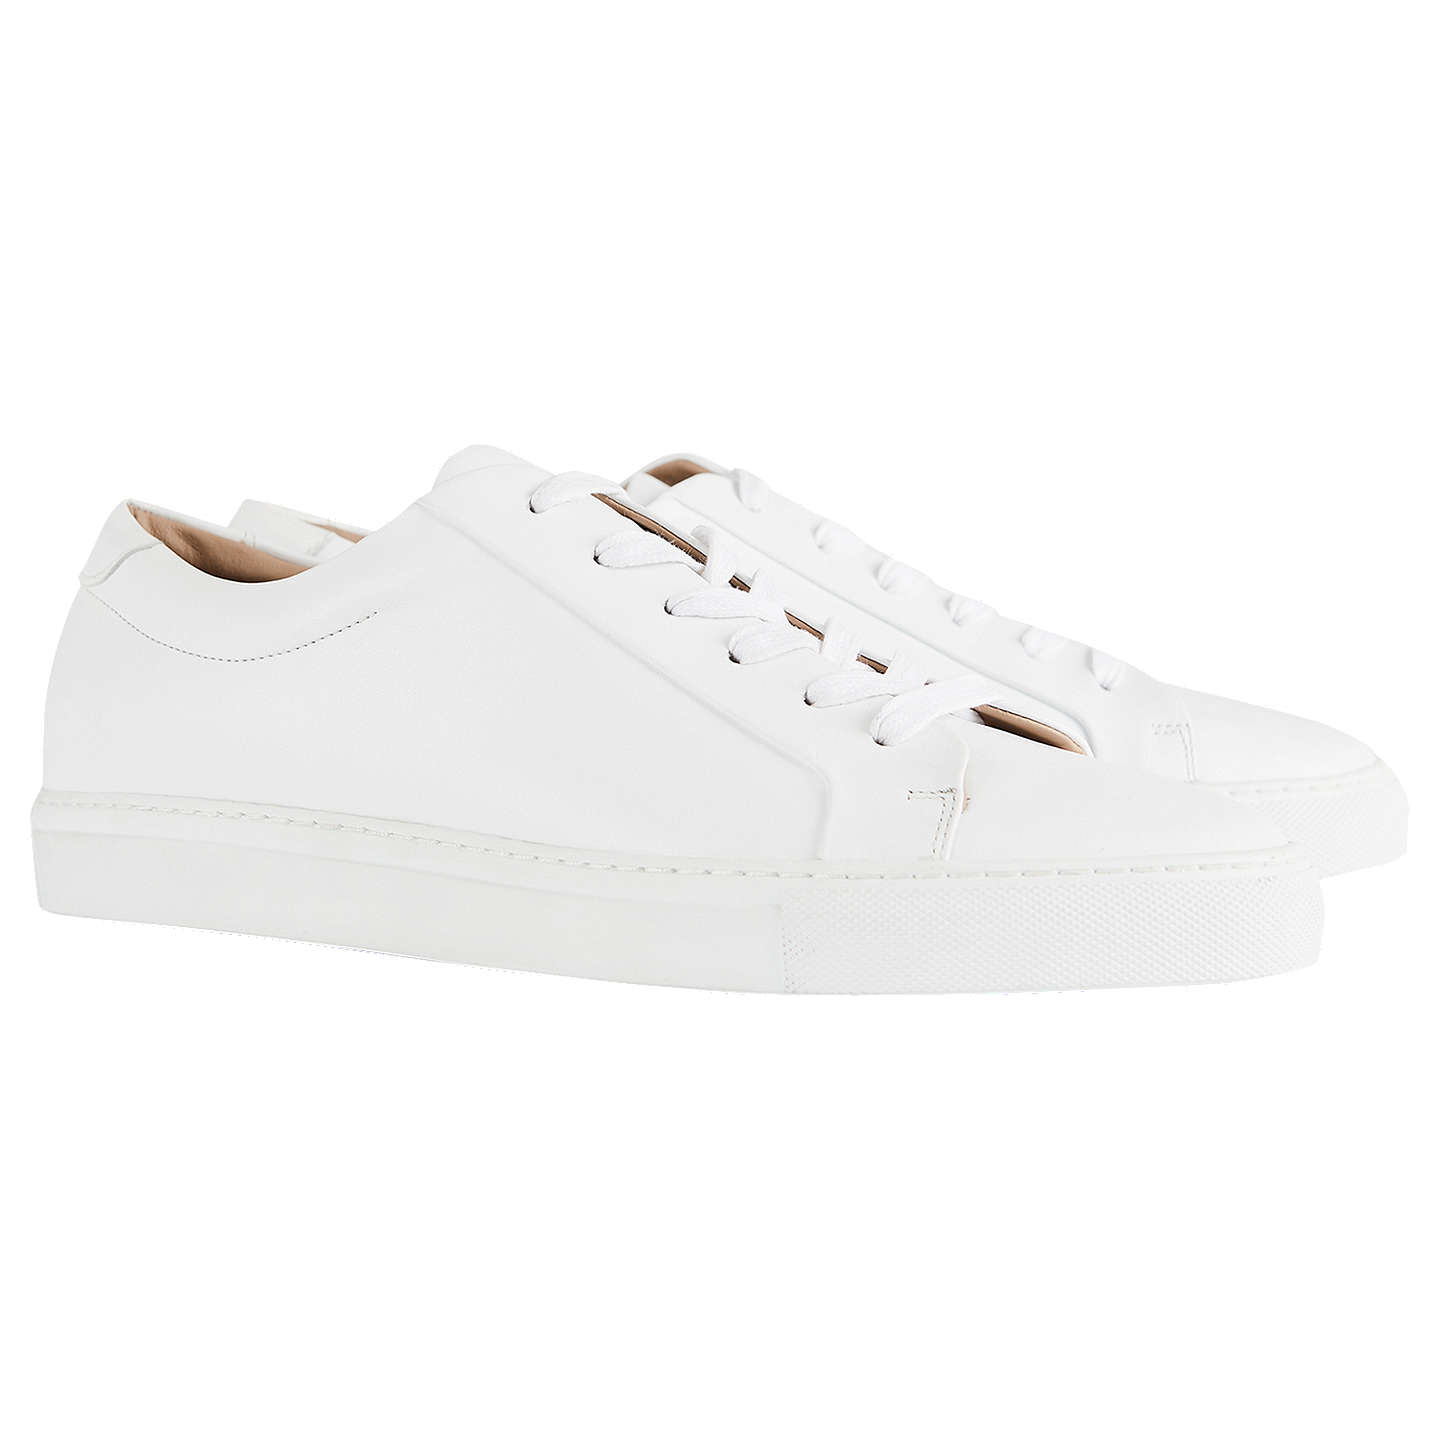 BuyReiss Darren Contrast Sole Leather Trainers, White, 7 Online at johnlewis.com